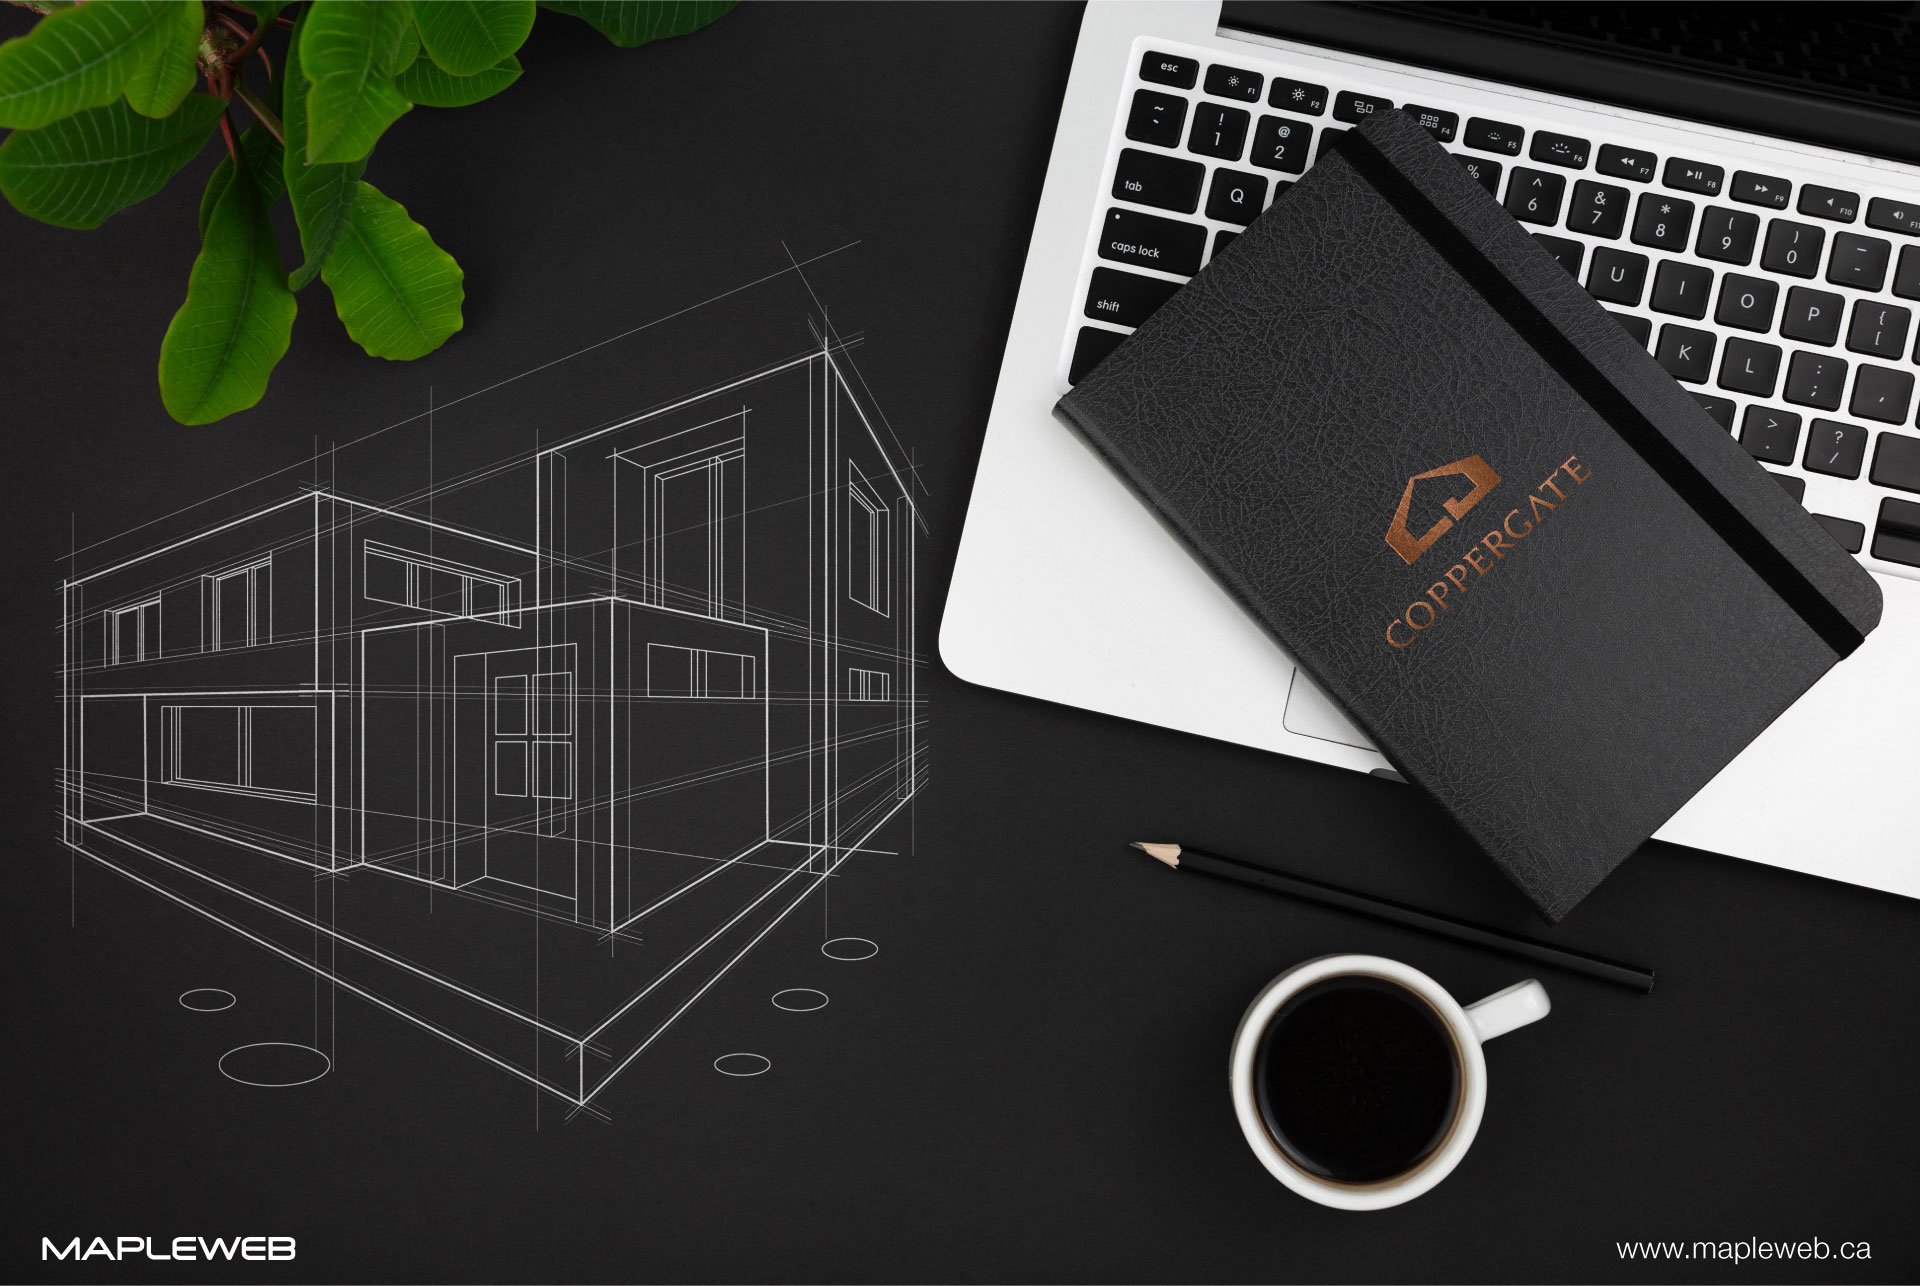 coppergate-brand-logo-design-by-mapleweb-vancouver-canada-notebook-mock